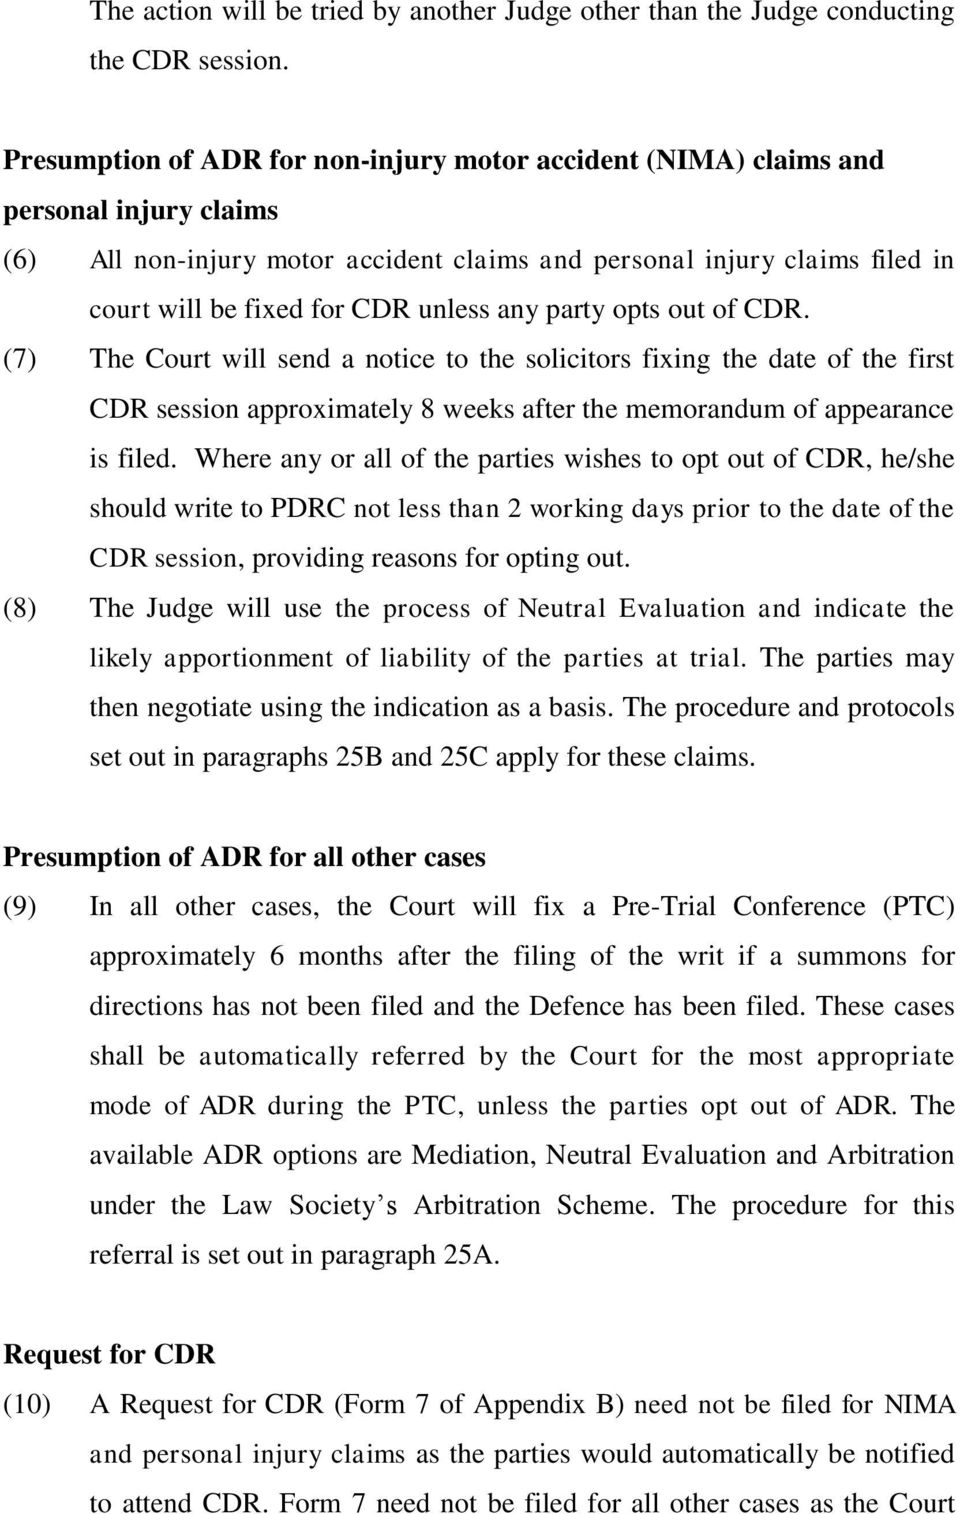 unless any party opts out of CDR. (7) The Court will send a notice to the solicitors fixing the date of the first CDR session approximately 8 weeks after the memorandum of appearance is filed.